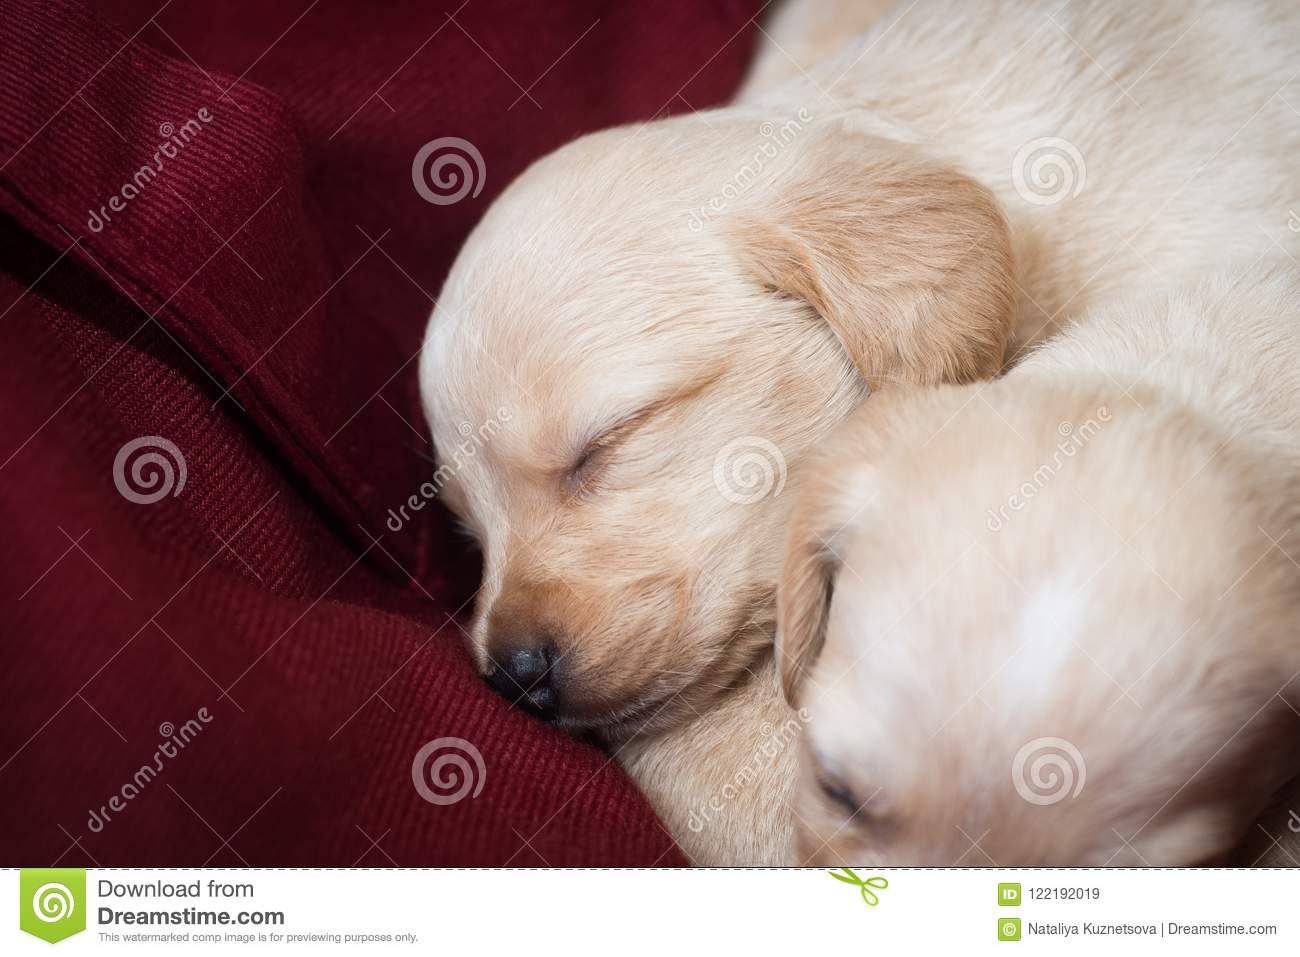 Cute Little Puppies Stock Image Image Of Litter Puppy 122192019